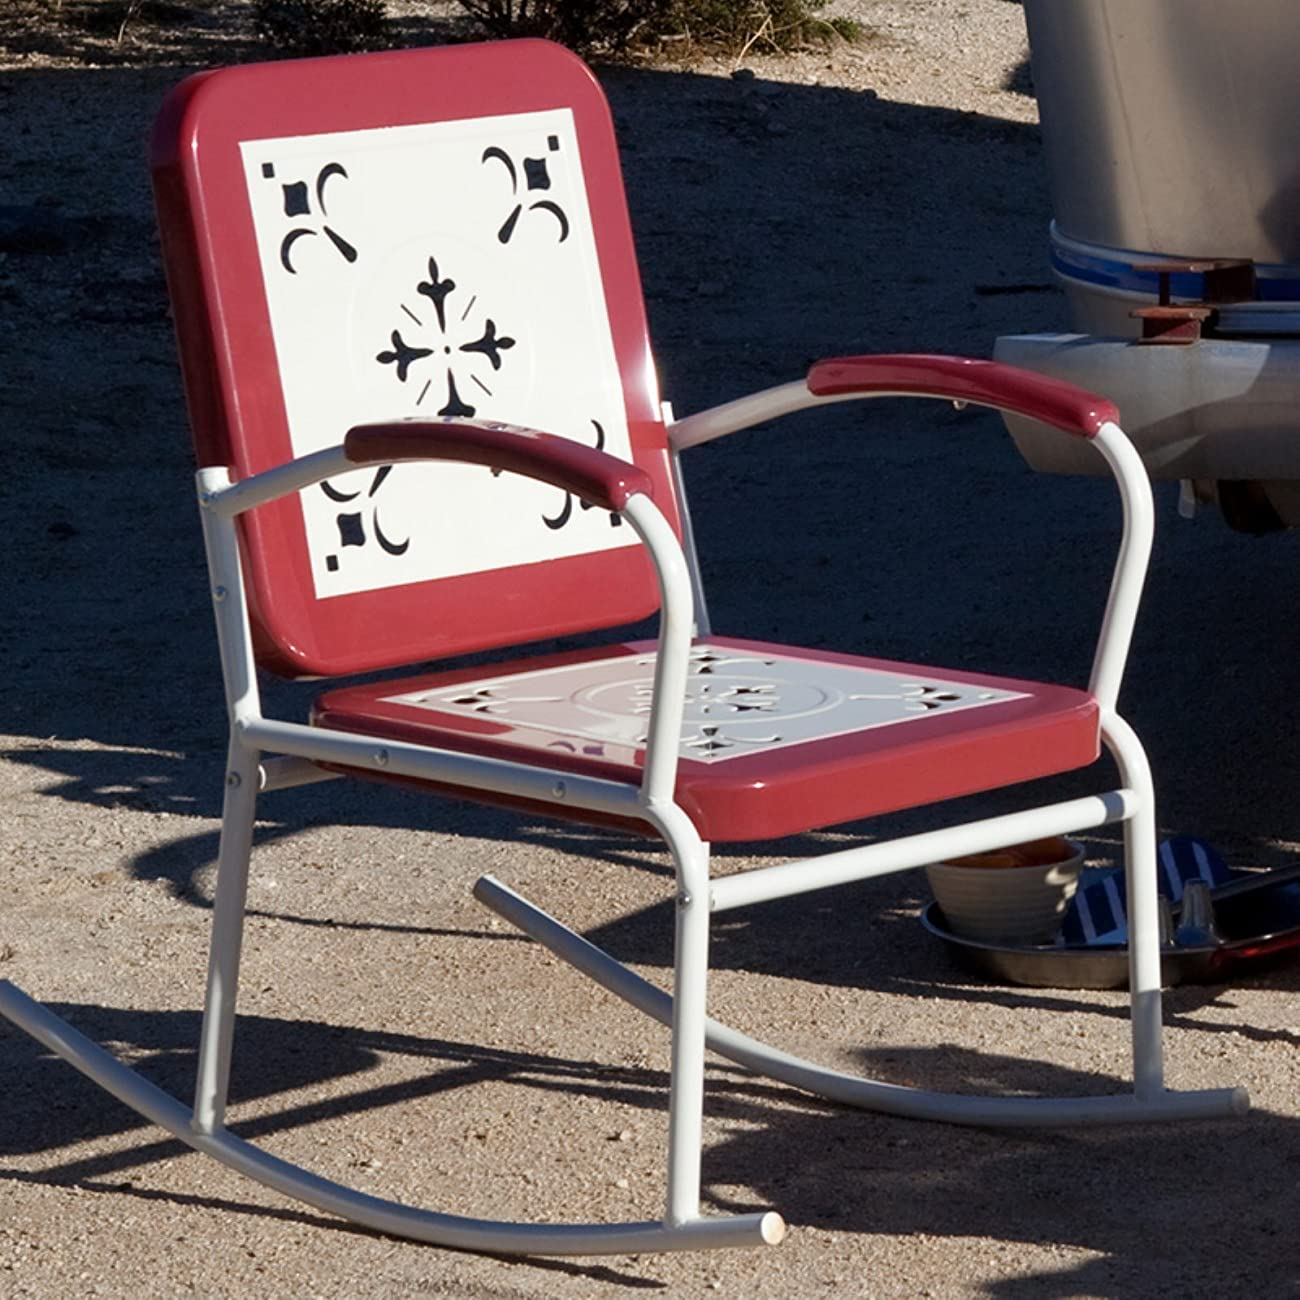 old fashioned metal lawn chairs wheelchair travel coral coast paradise cove retro rocker